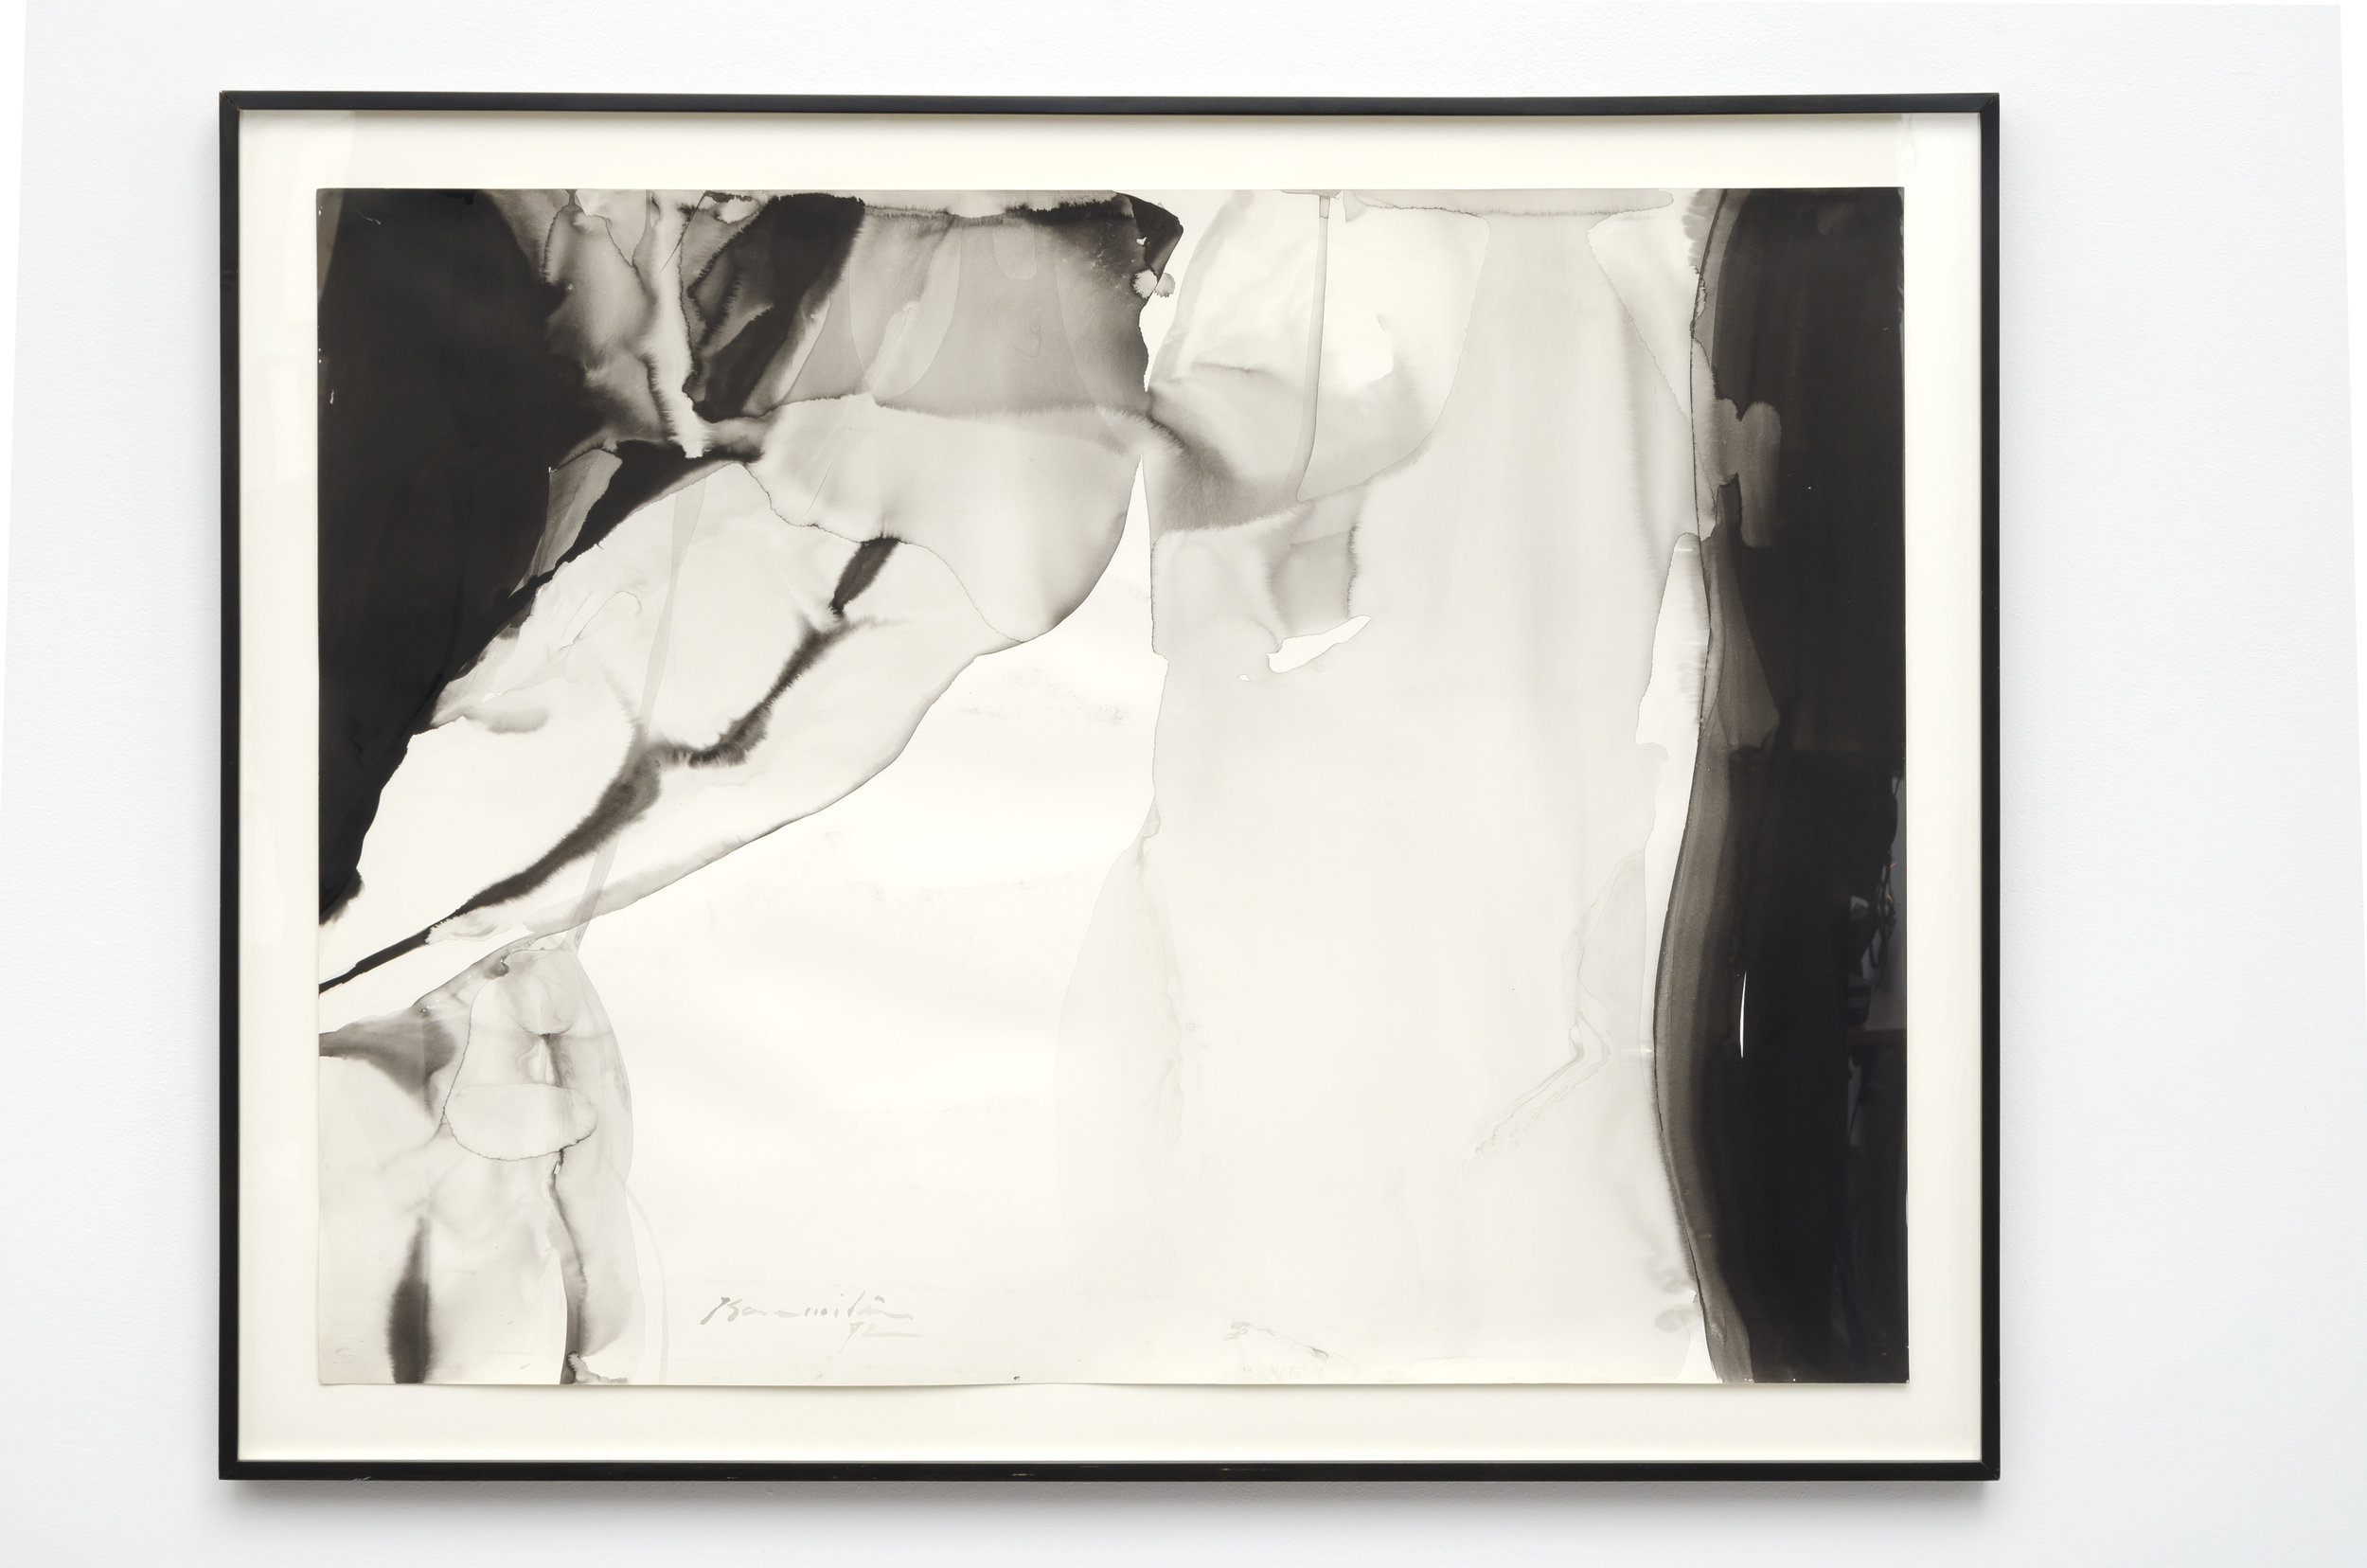 Colossal Cave #4 , 1972 ink on paper 35 x 45 inches; 88.9 x 114.3 centimeters